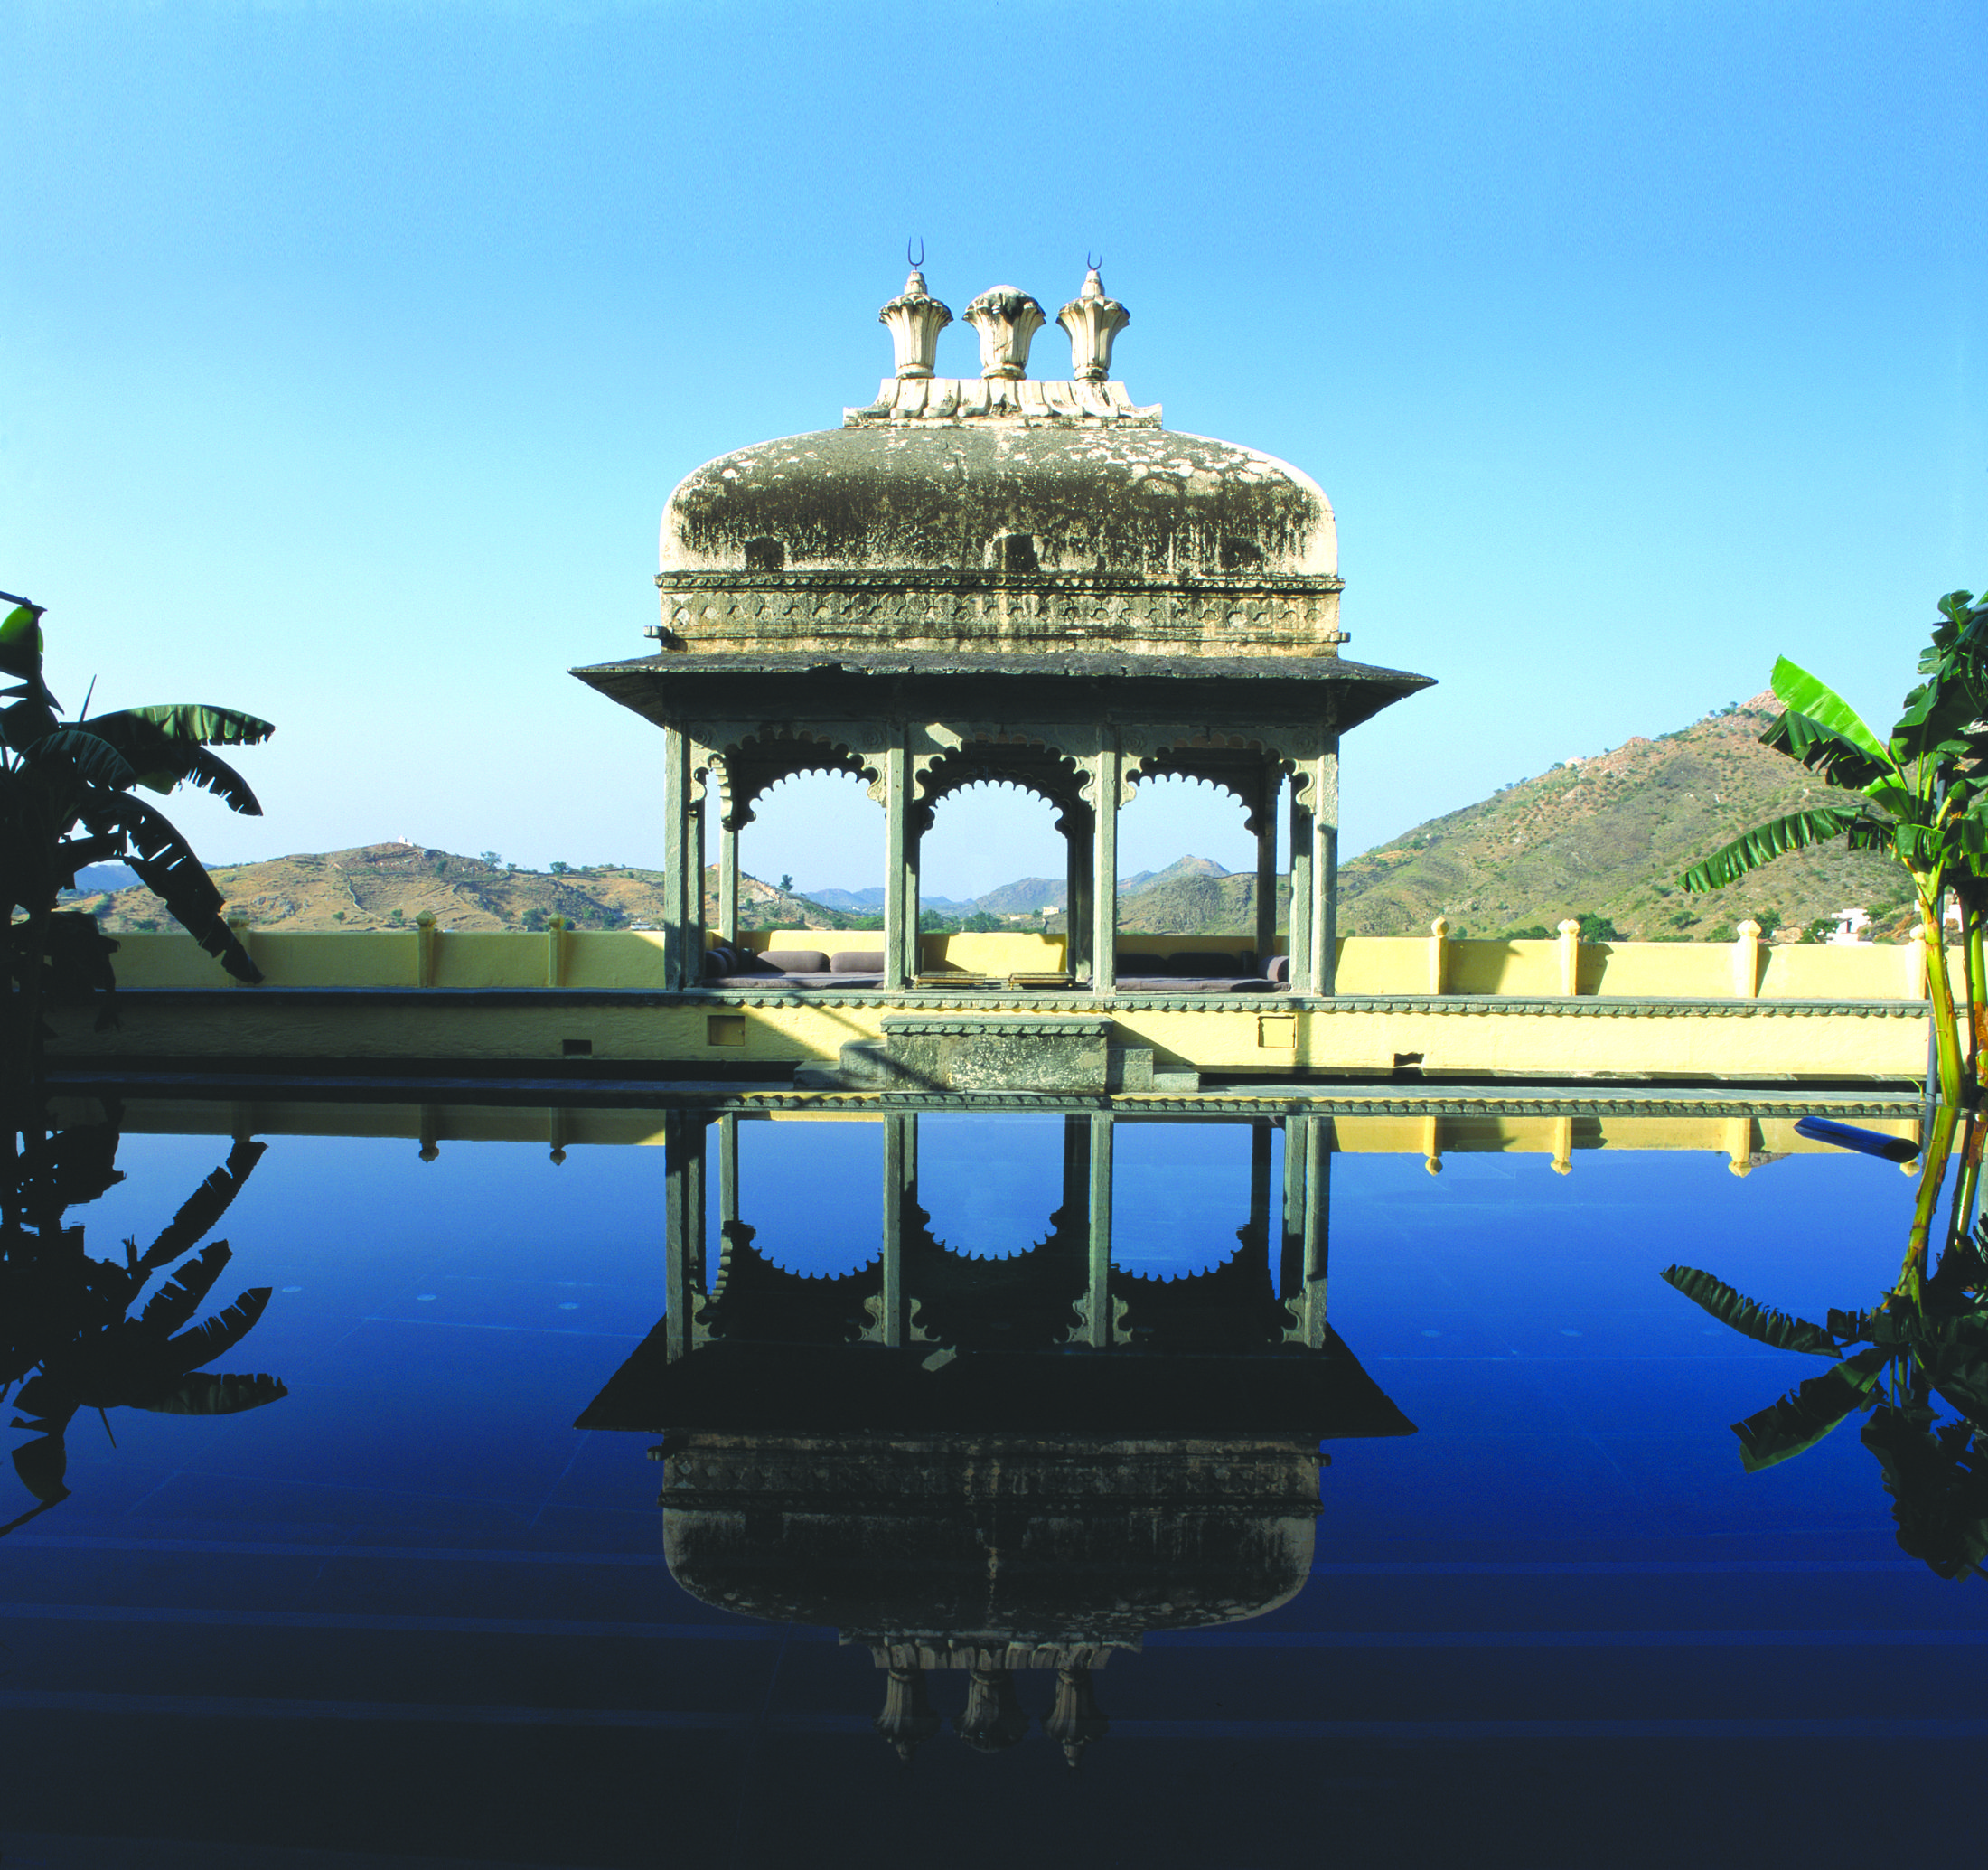 Been there, done that.. ;) Dreaming of a trip to India